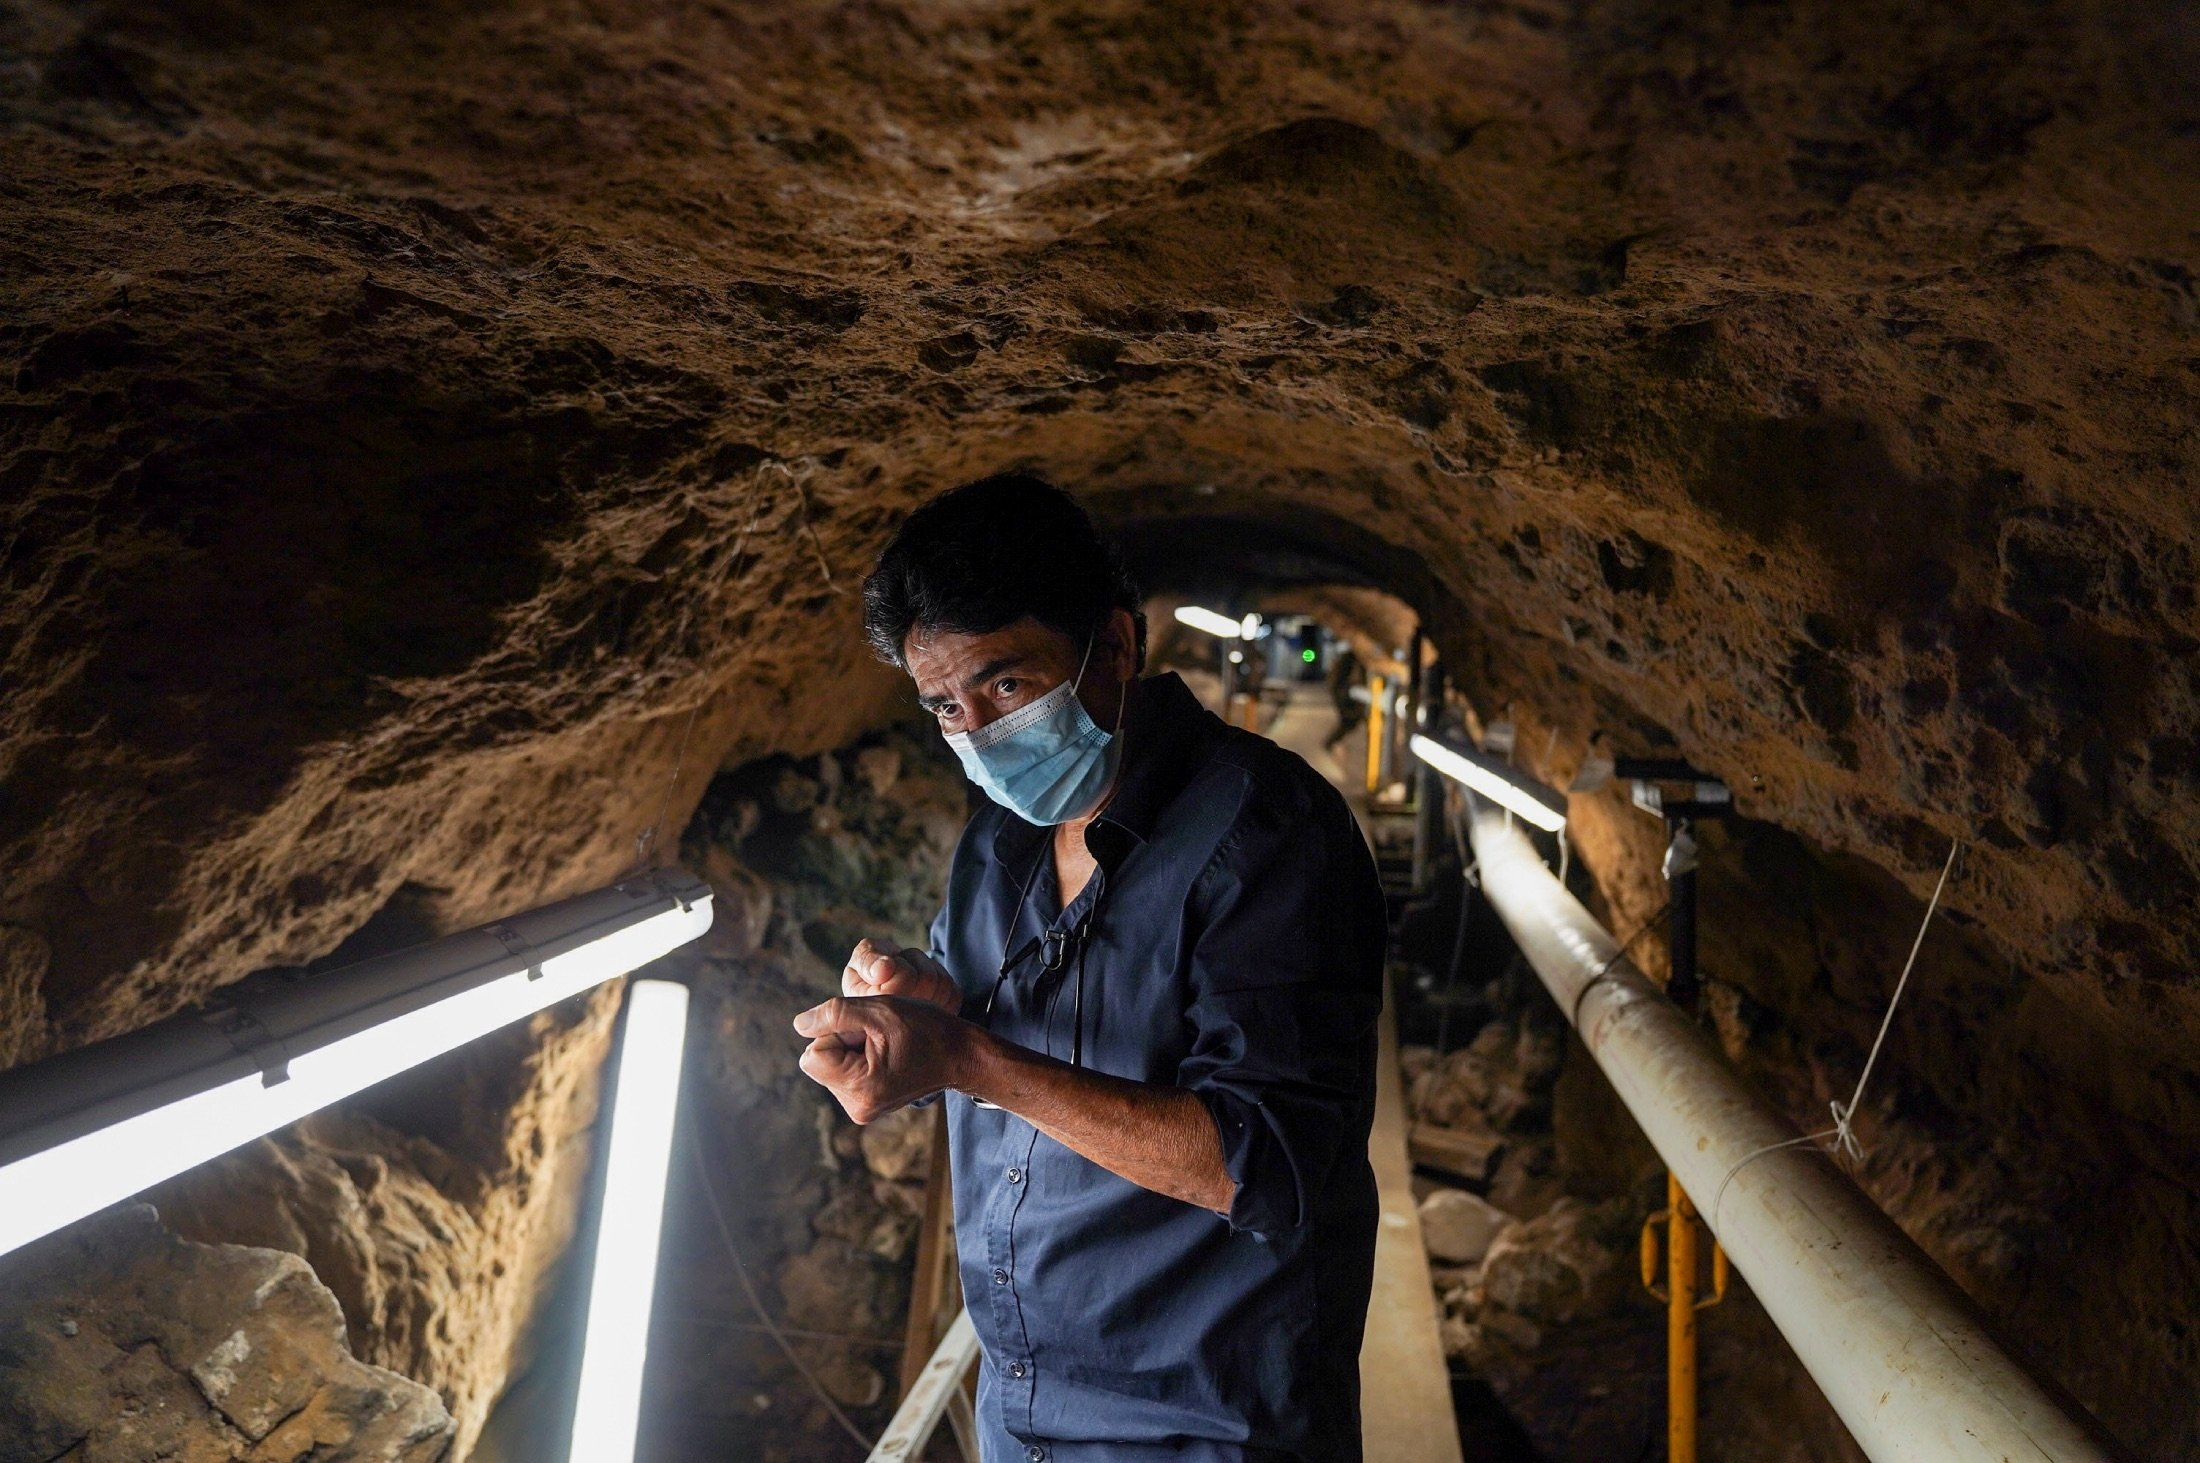 Archaeologist Sergio Gomez gestures inside a 2,000-year-old tunnel built under the ornate Feathered Serpent Pyramid, in the ruins of Teotihuacan, in San Juan Teotihuacan, Mexico, Aug. 12, 2021. (Reuters Photo)